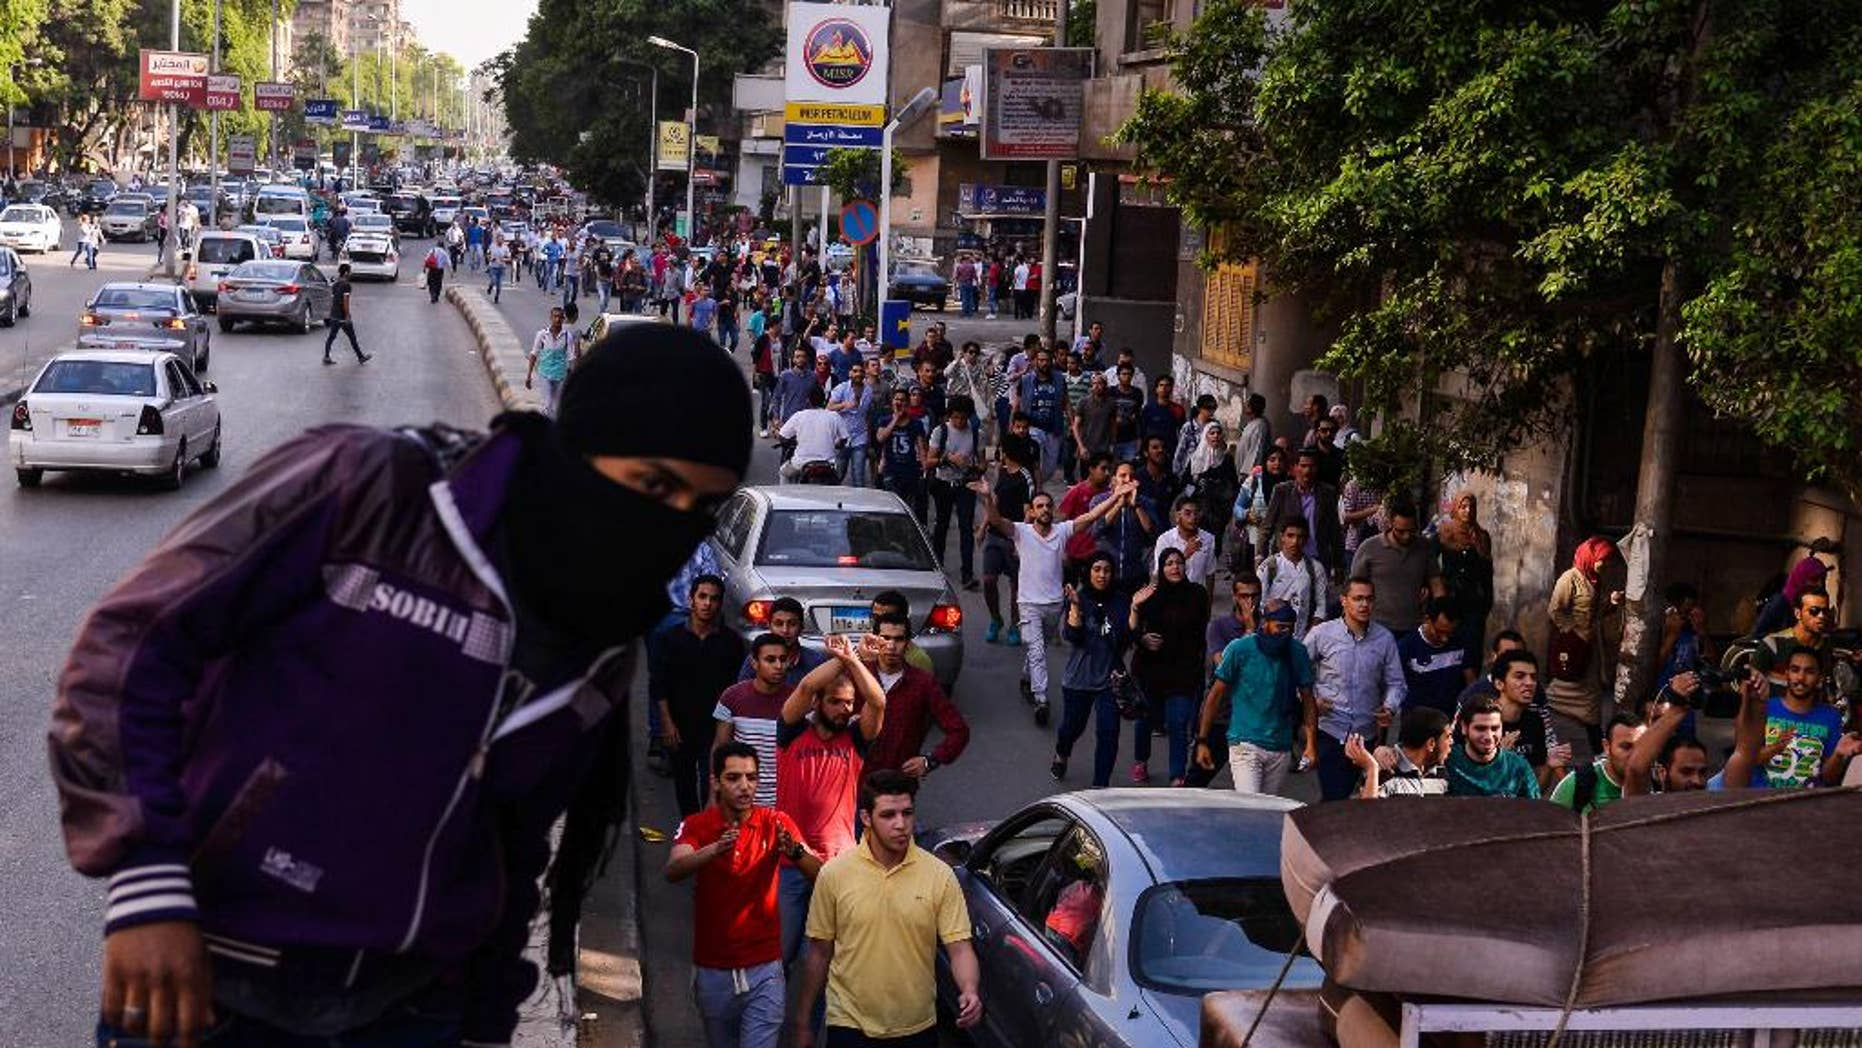 Egyptians demonstrate against President Abdel-Fattah el-Sissi in Mesaha square in Cairo's Dokki district, Monday, April 25, 2016.  Police fired tear gas and birdshot on Monday to disperse hundreds of demonstrators calling on el-Sissi to step down over his government's decision to surrender control over two strategic Red Sea islands to Saudi Arabia. (AP Photo/Mostafa Darwish)